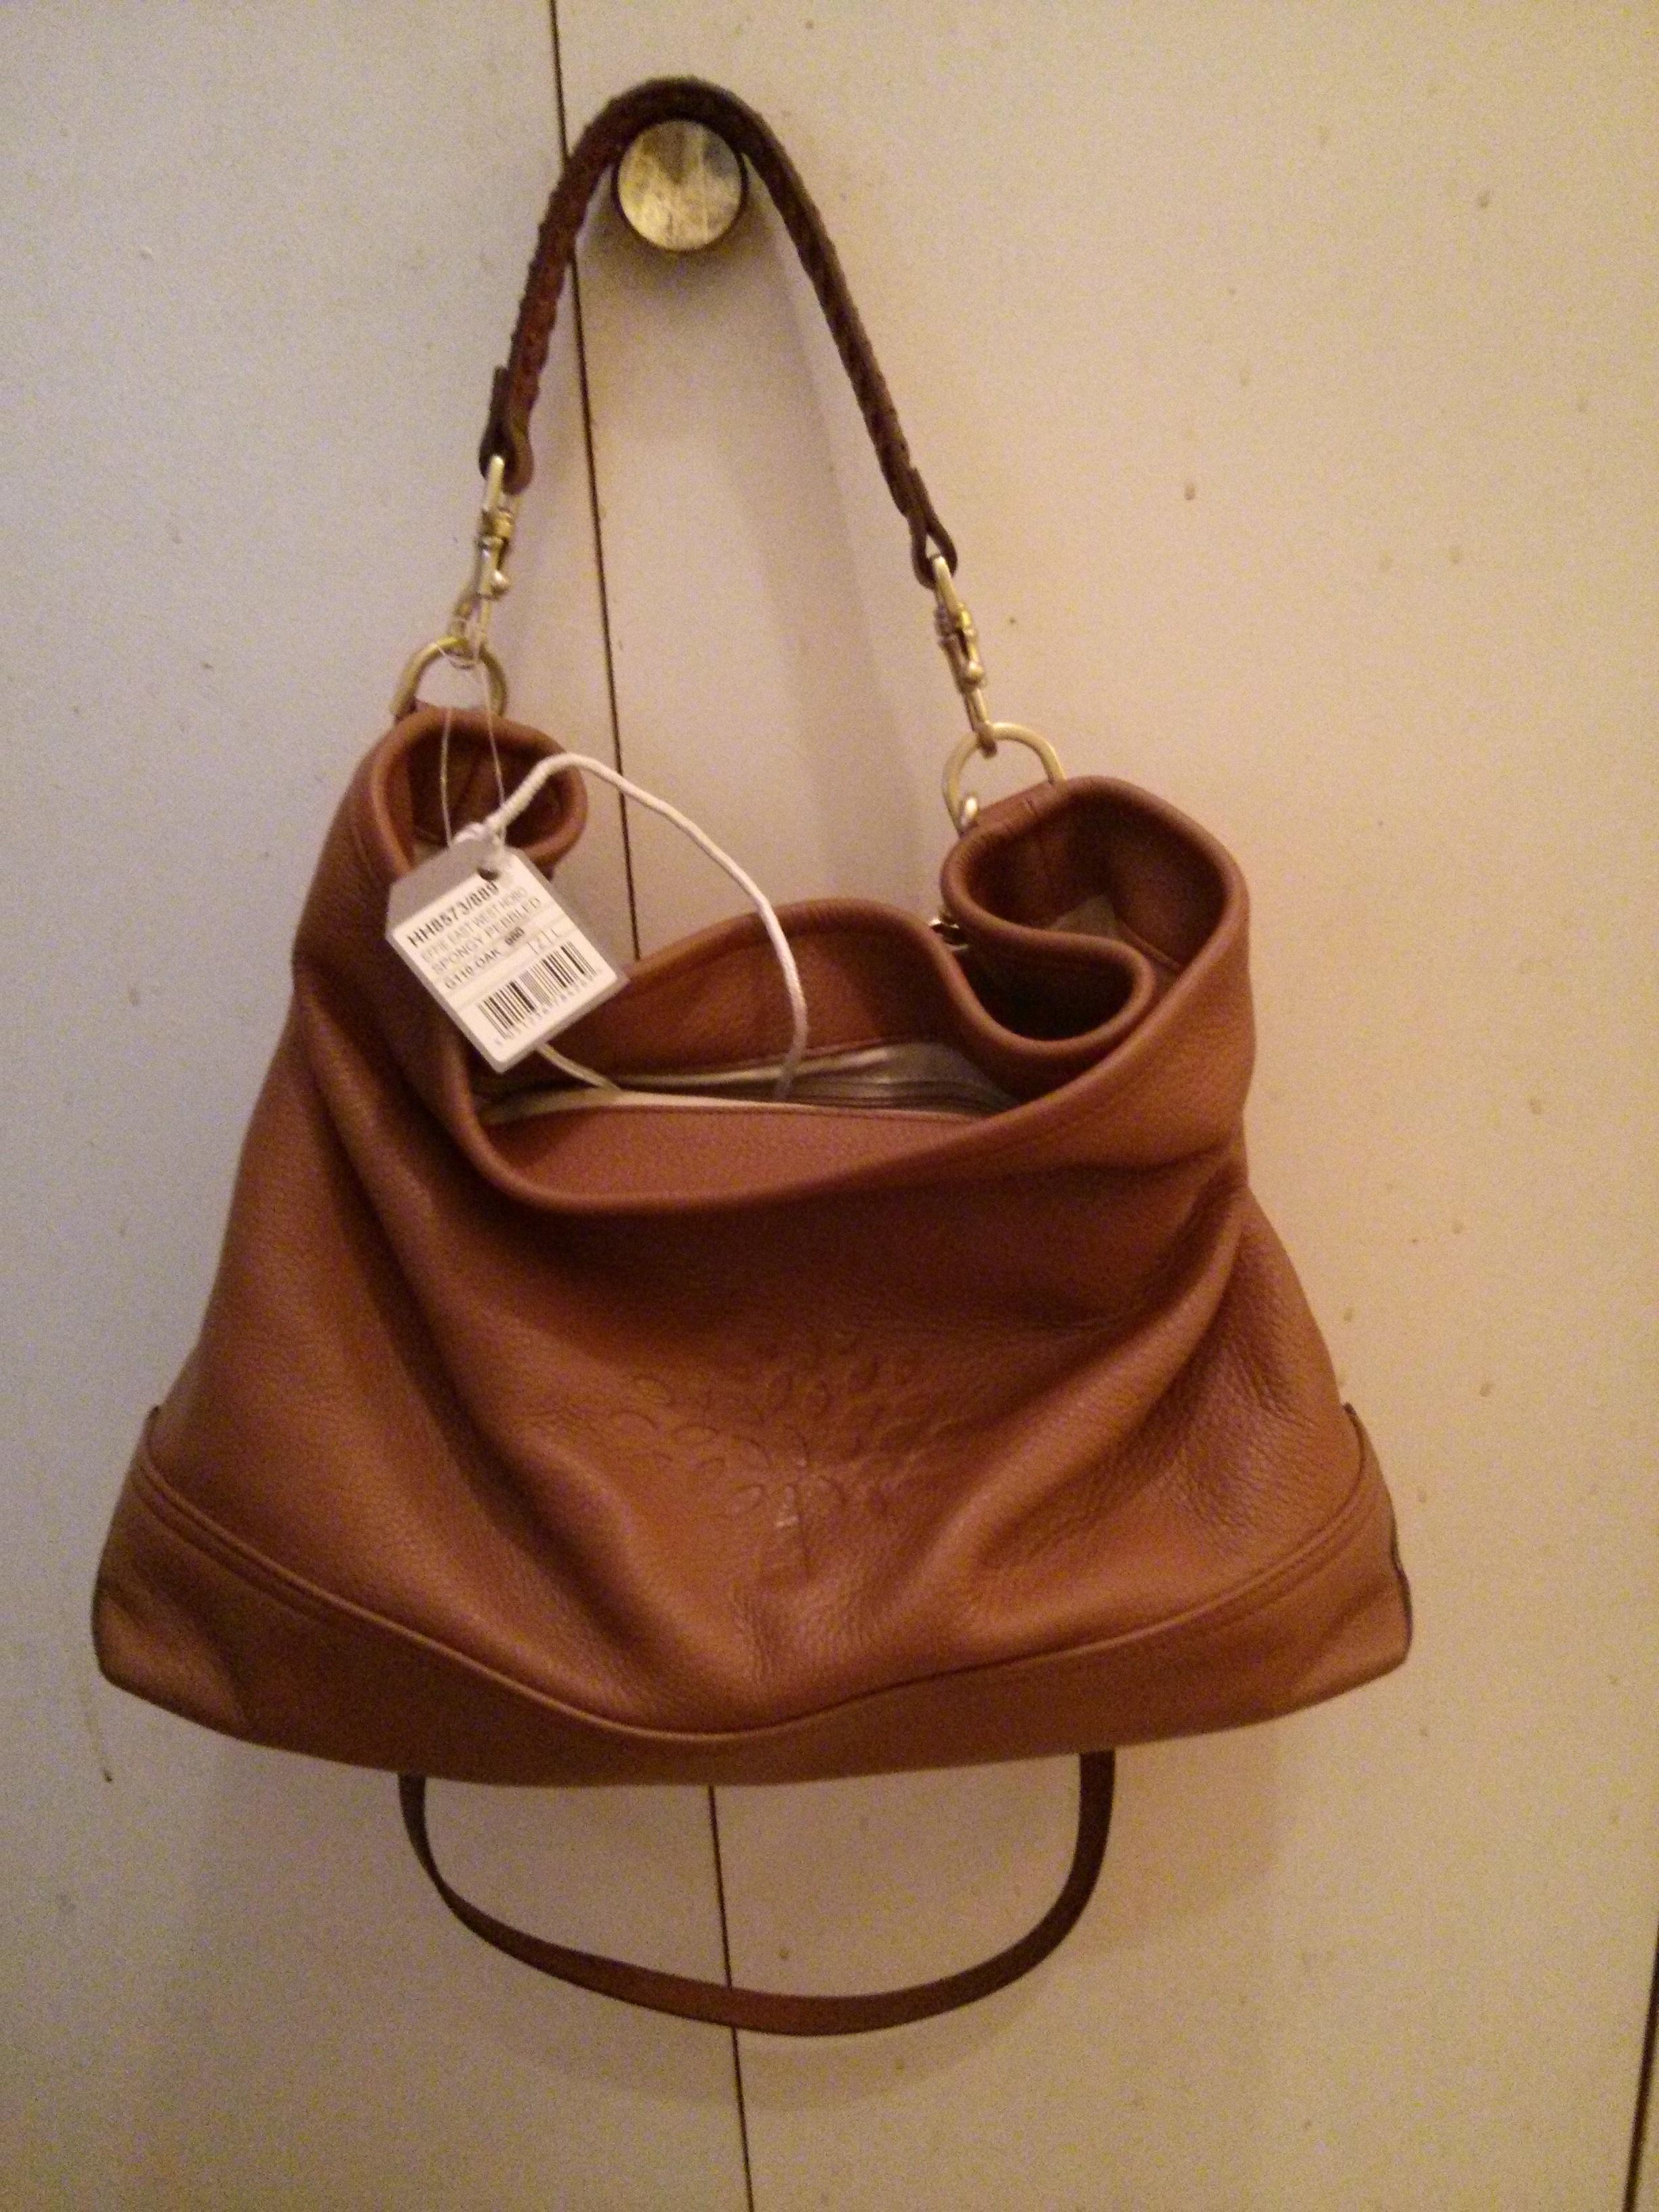 switzerland mulberry. effie tote 6908d 723a1  cheapest mulberry hobo bag.  12345 a82c6 9eae2 9c1a62faef87f